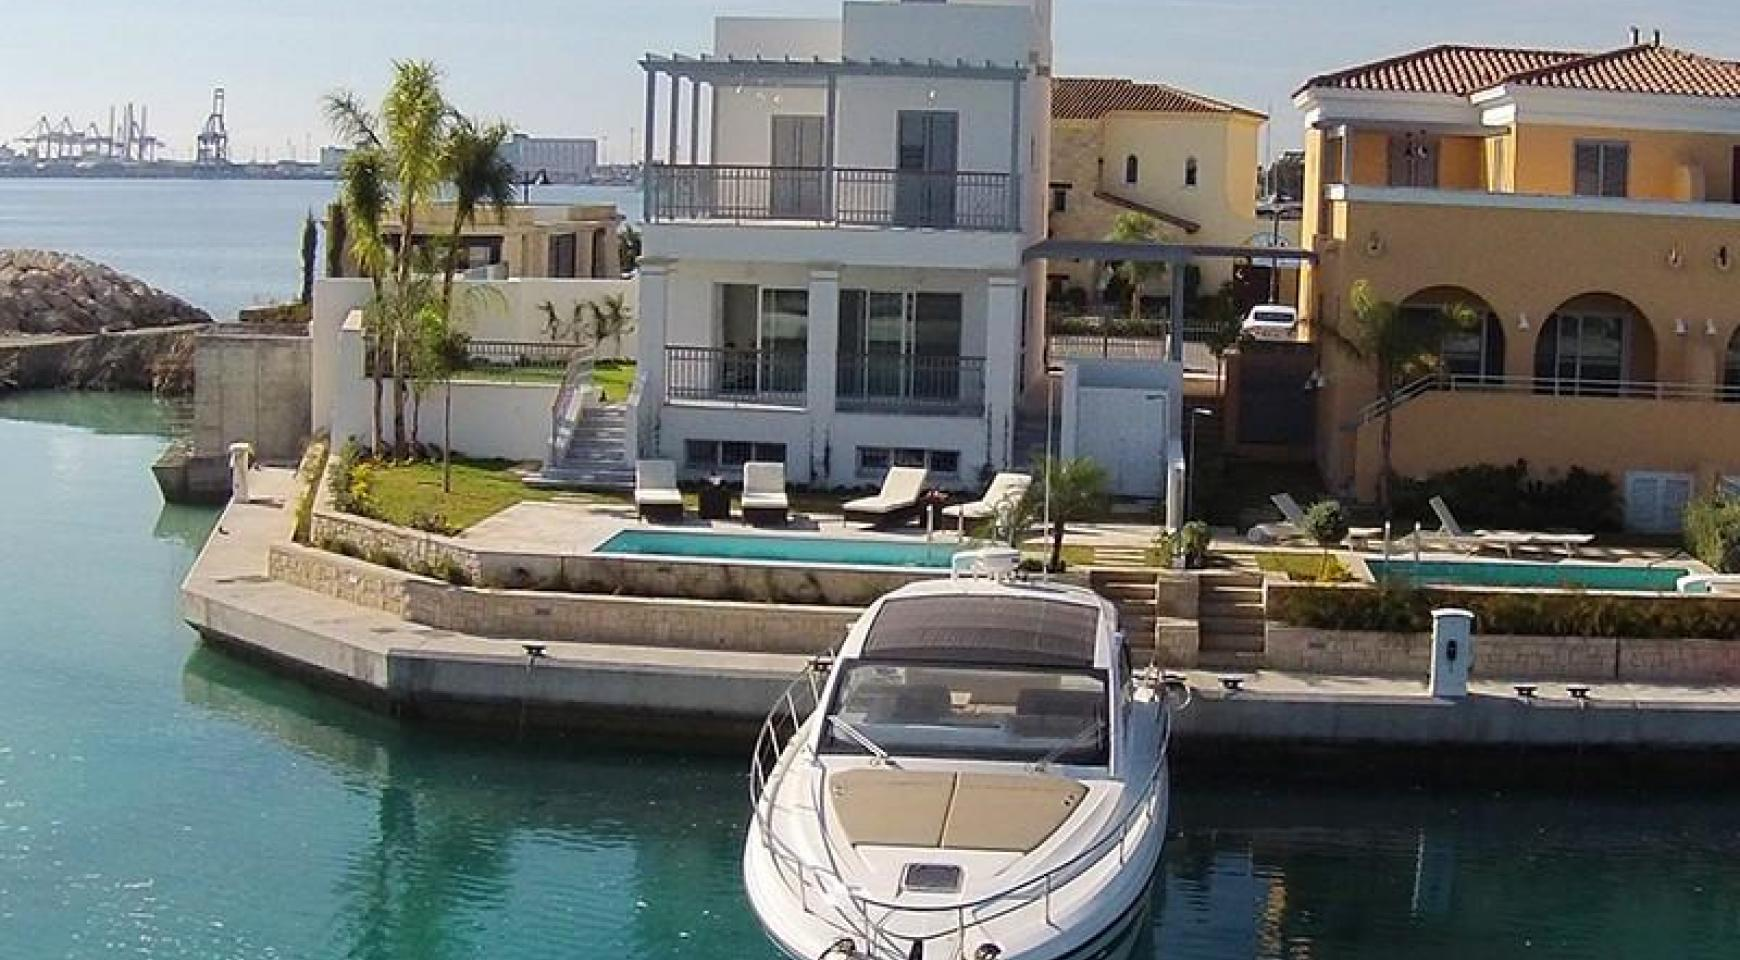 Luxurious 3 Bedroom Villa in an Exclusive development by the Sea - 7